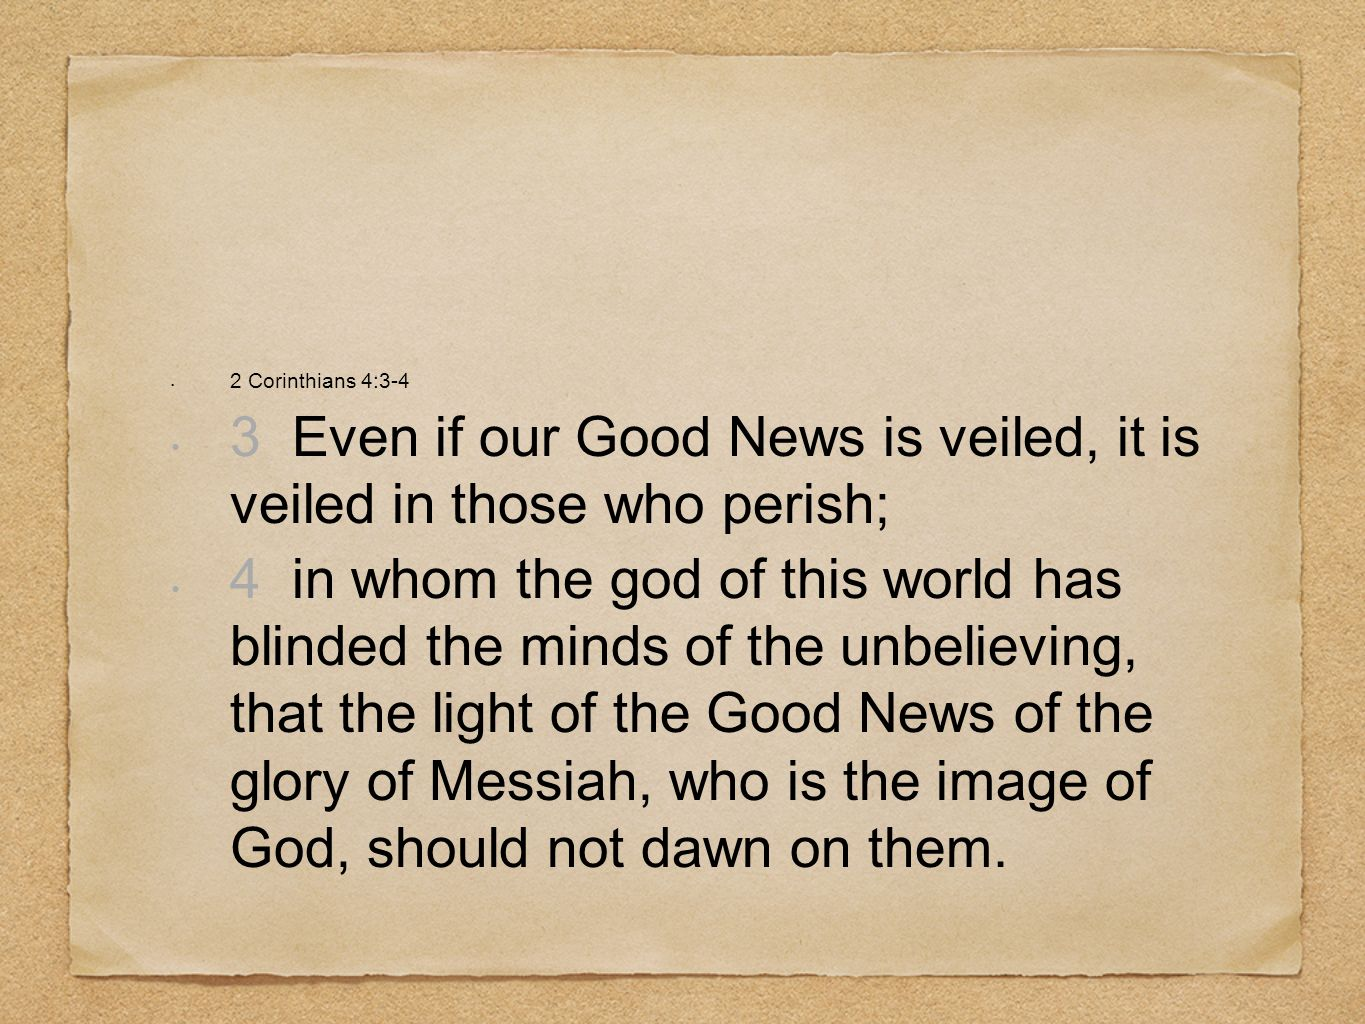 3 Even if our Good News is veiled, it is veiled in those who perish;